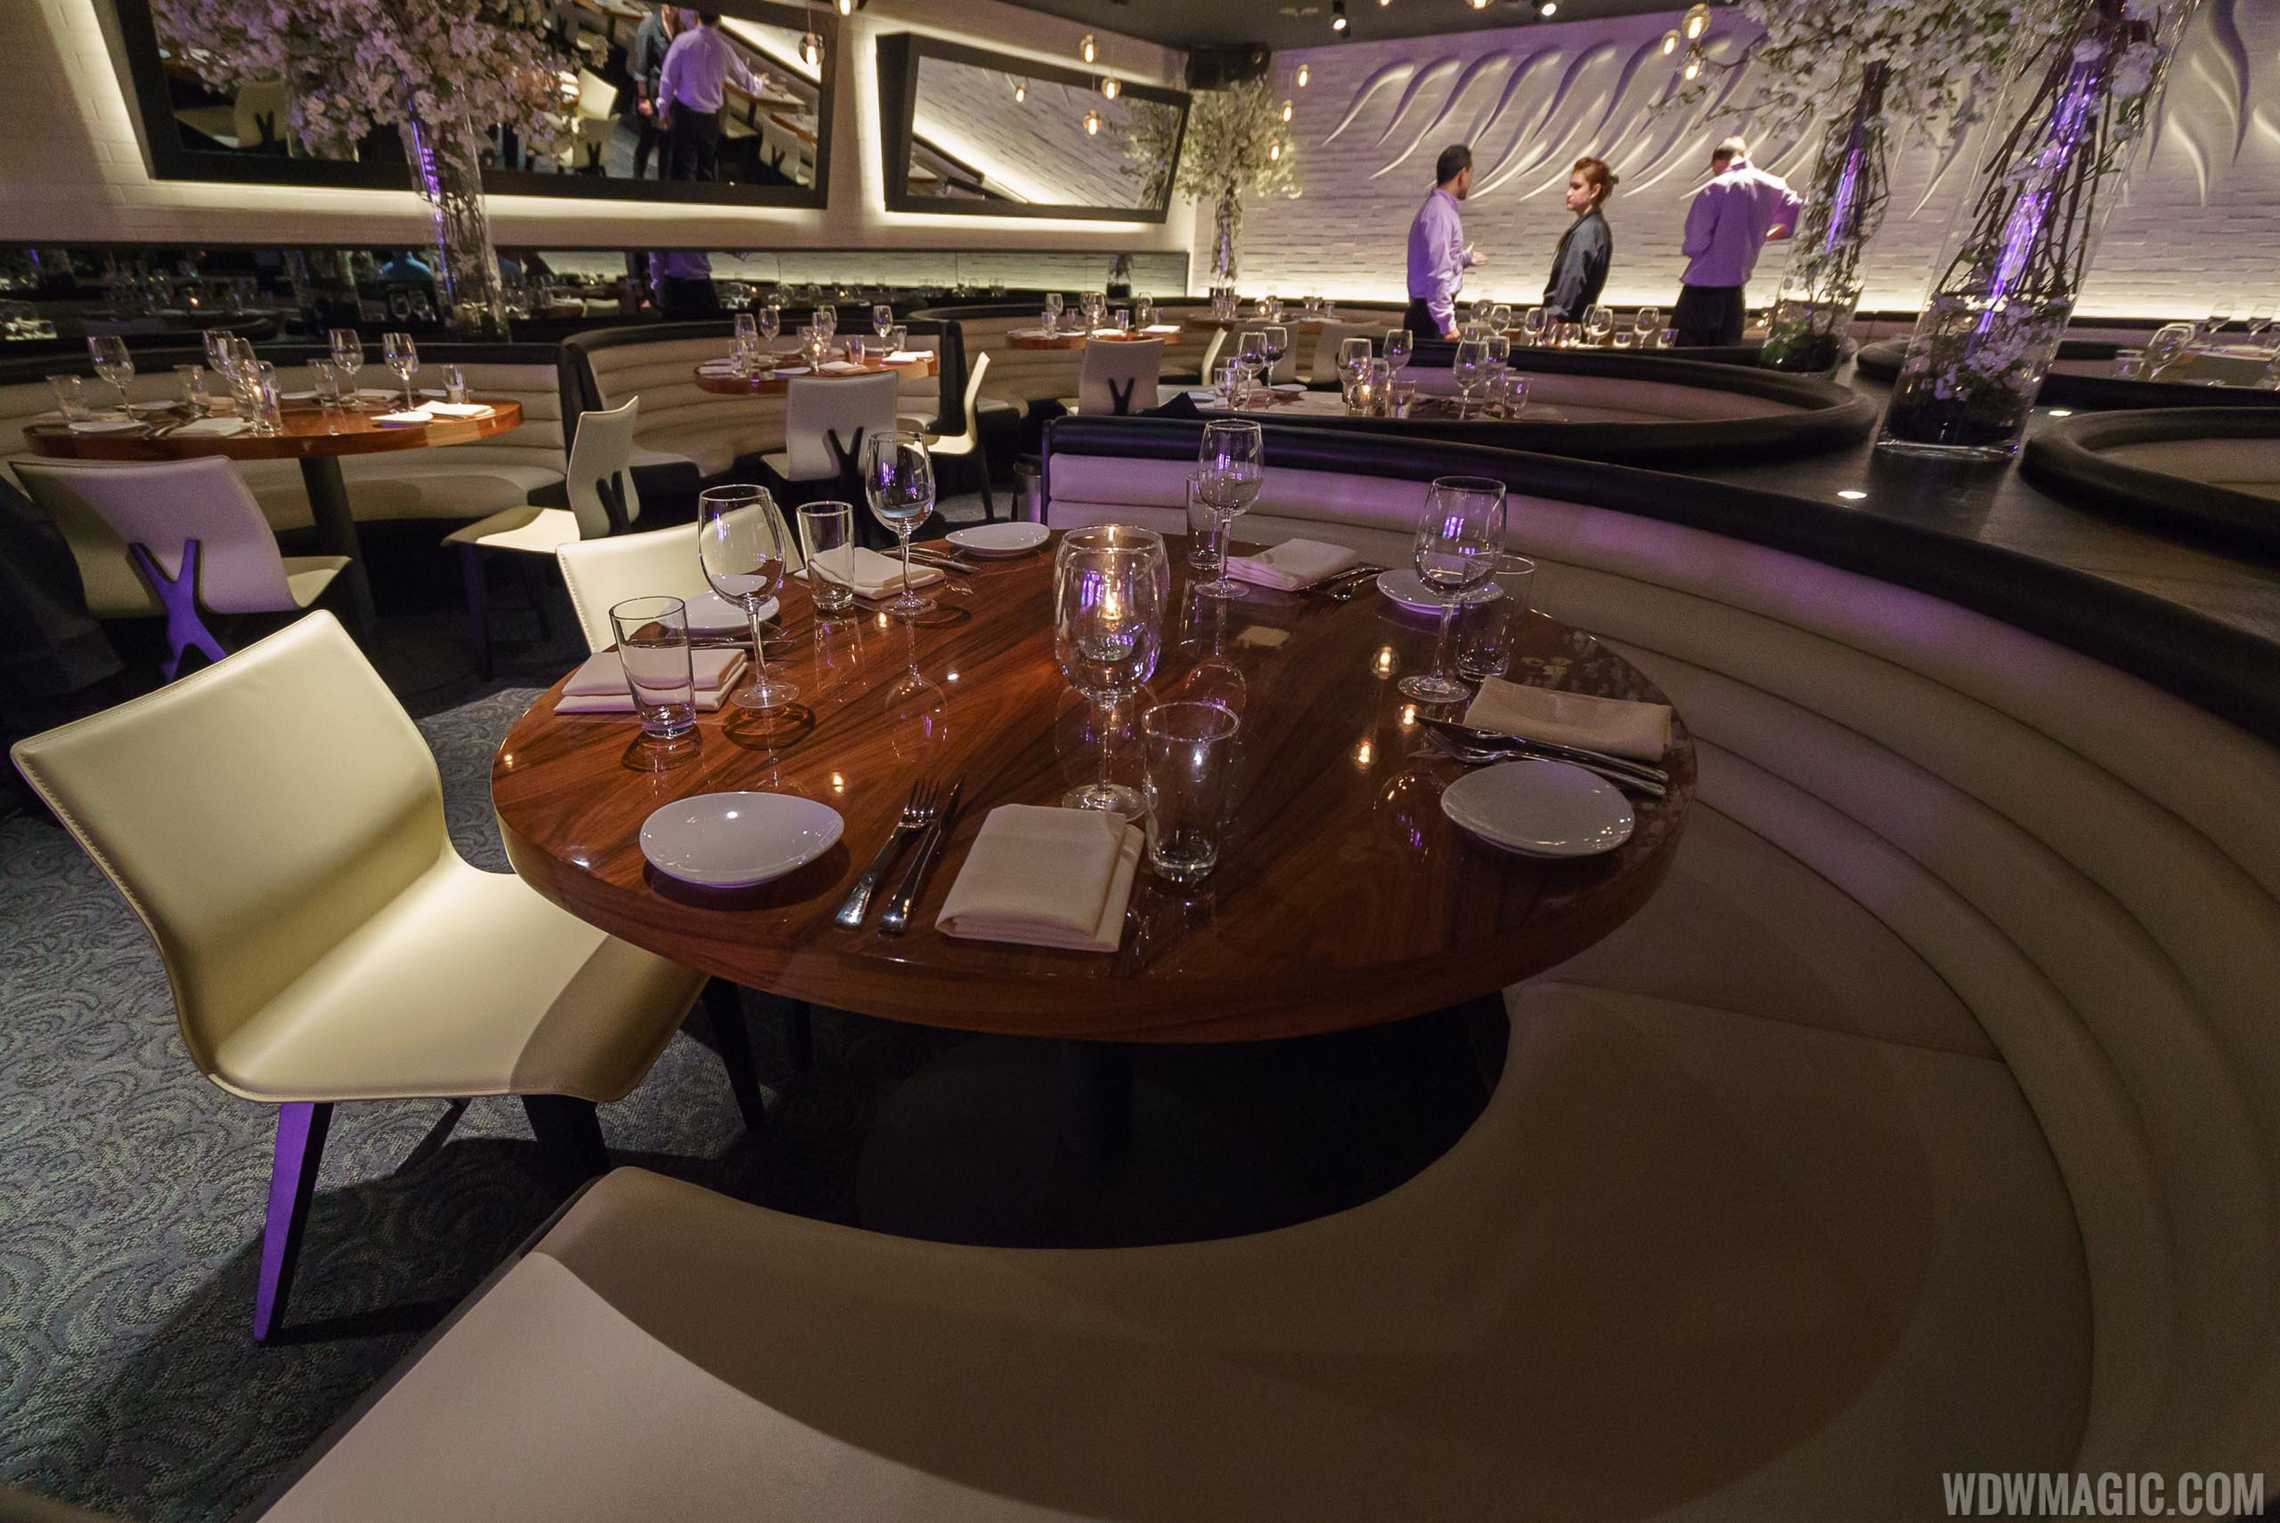 STK Orlando - Main dining room on lower level